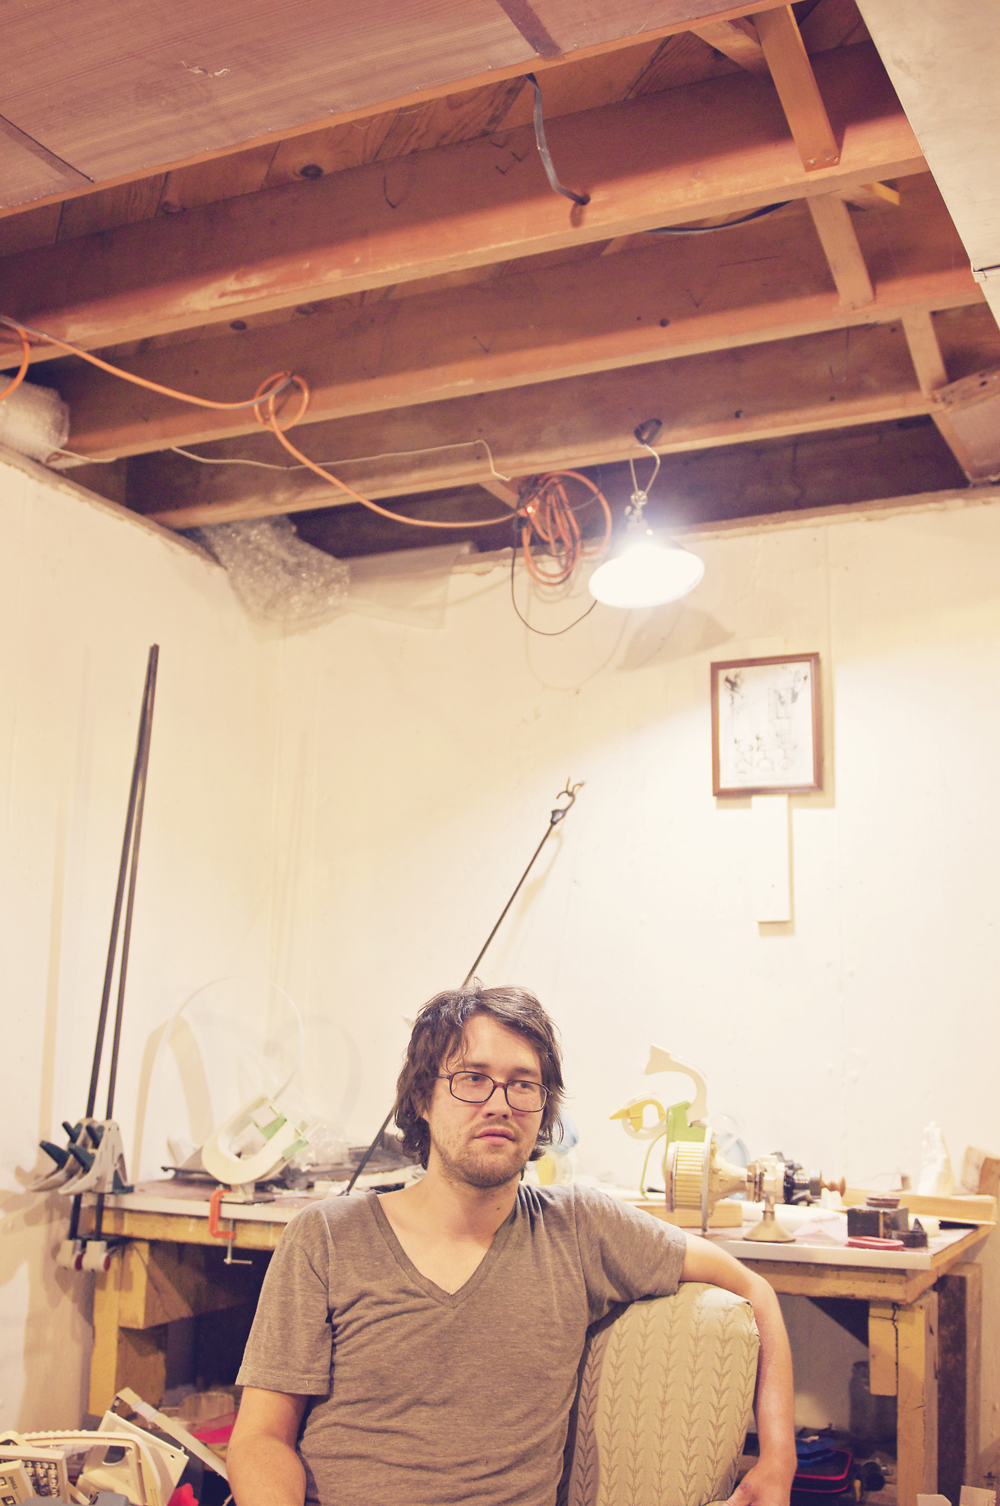 david-lethcoe-in-studio-basement